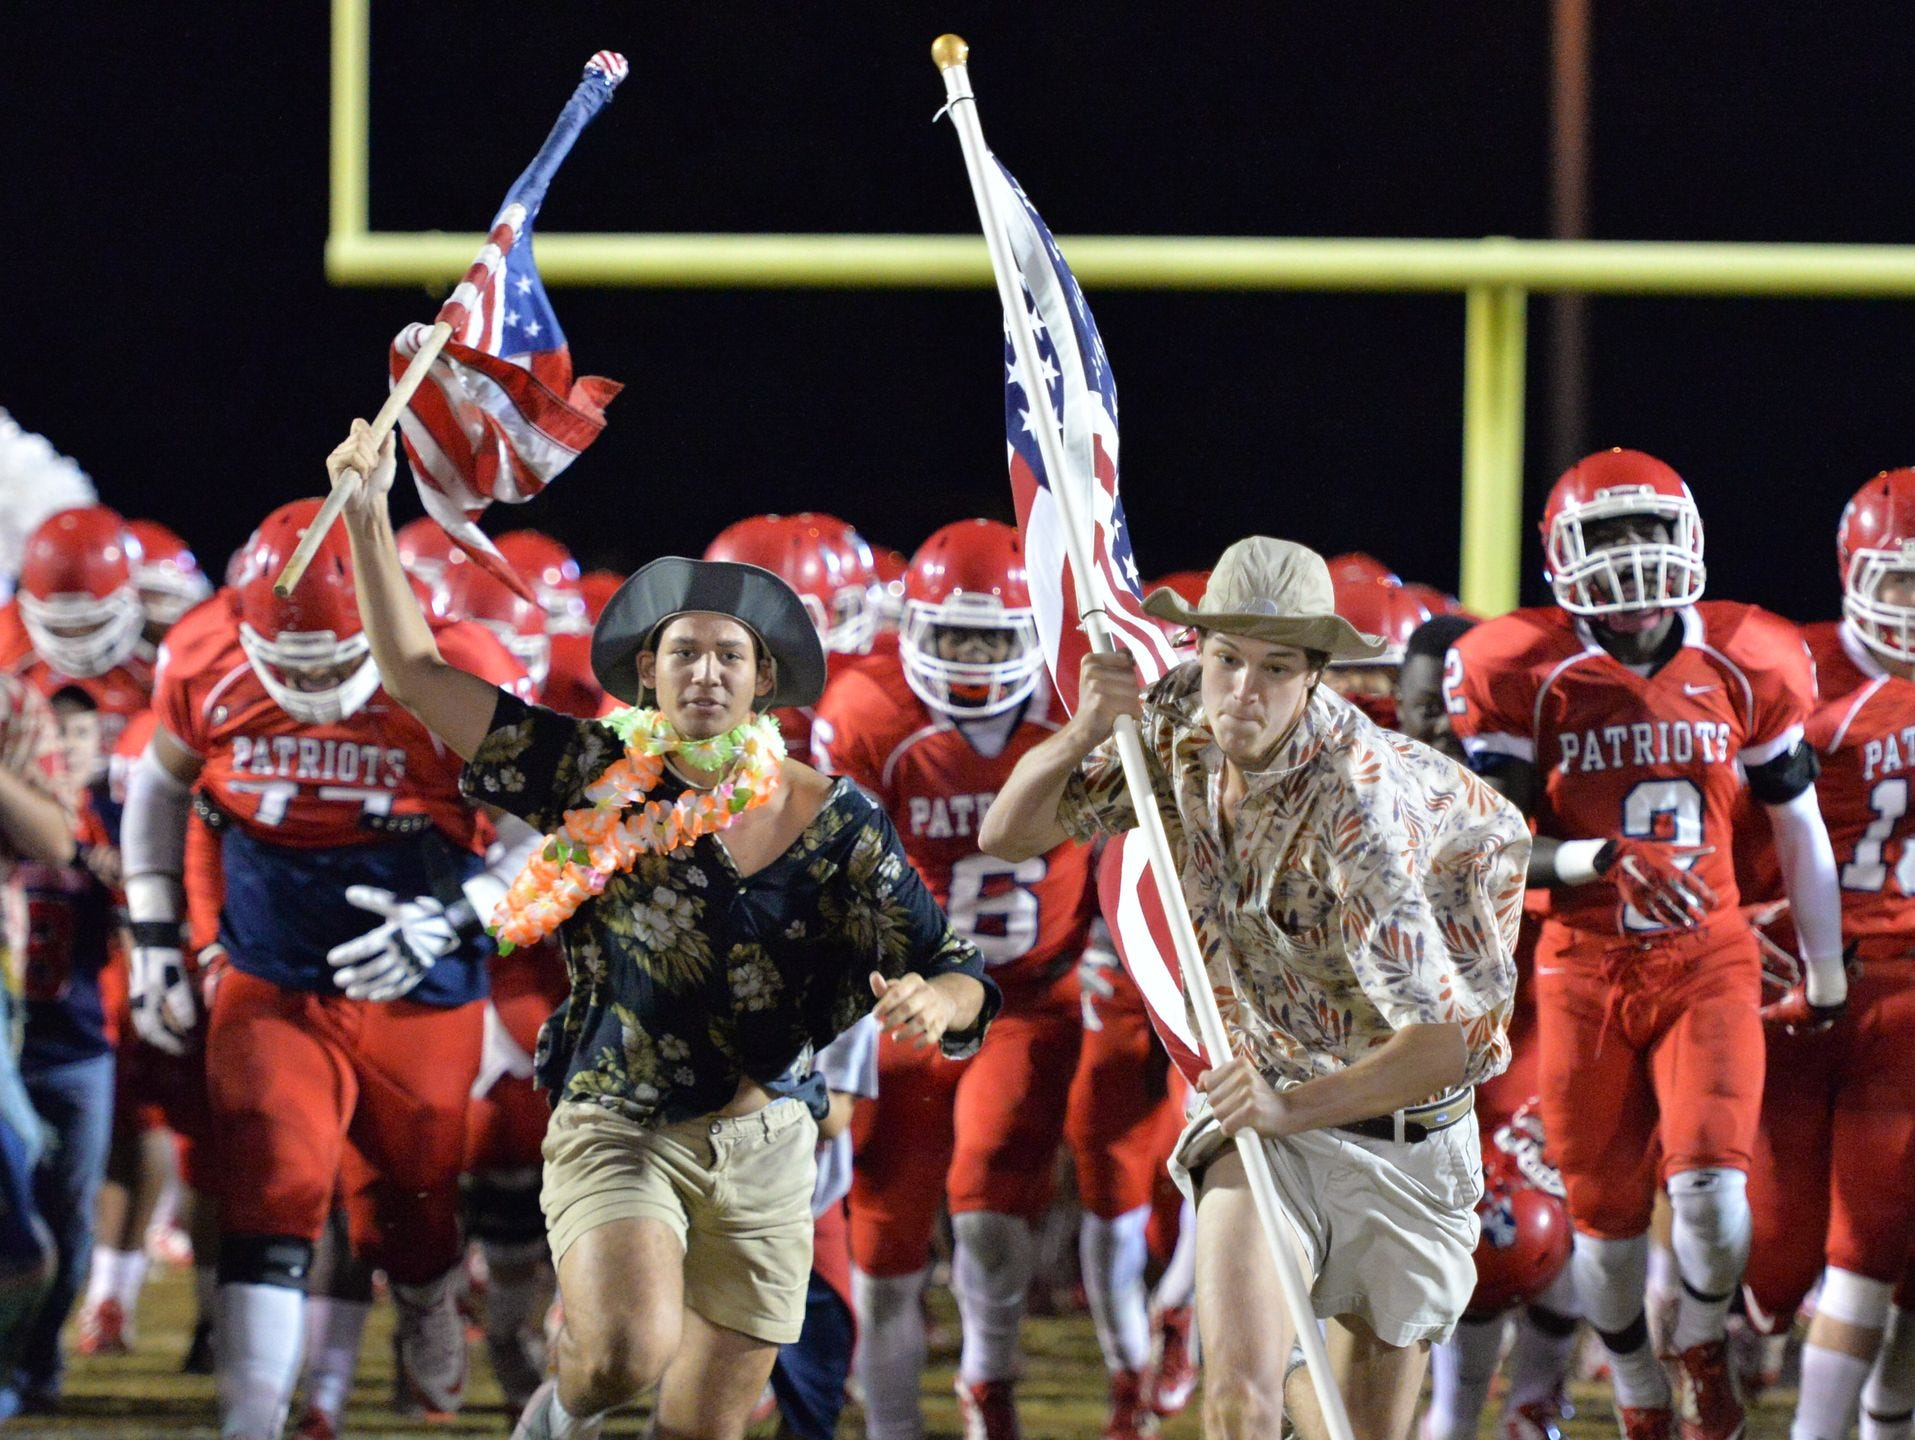 Oakland takes the field prior to Friday's game against Coffee County.